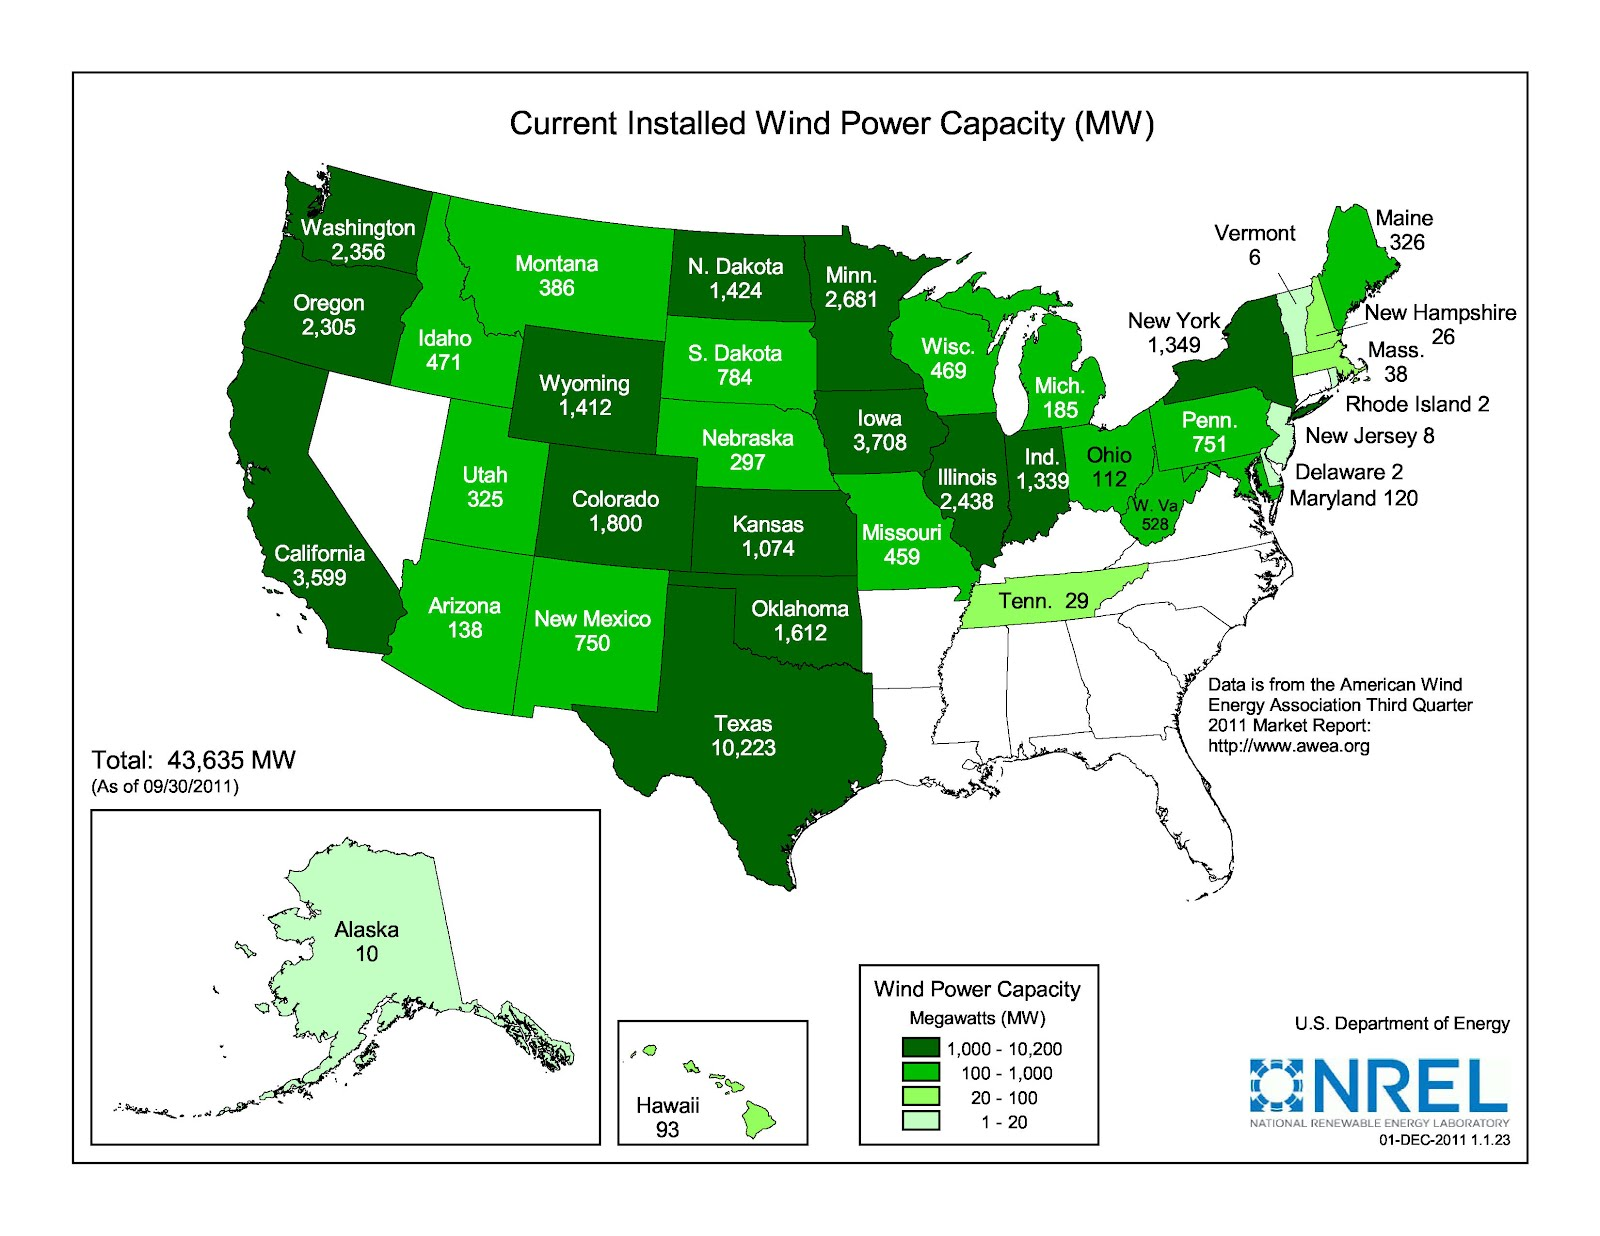 U.S. Current Installed Wind Power Generation Capacity, 30 September 2011